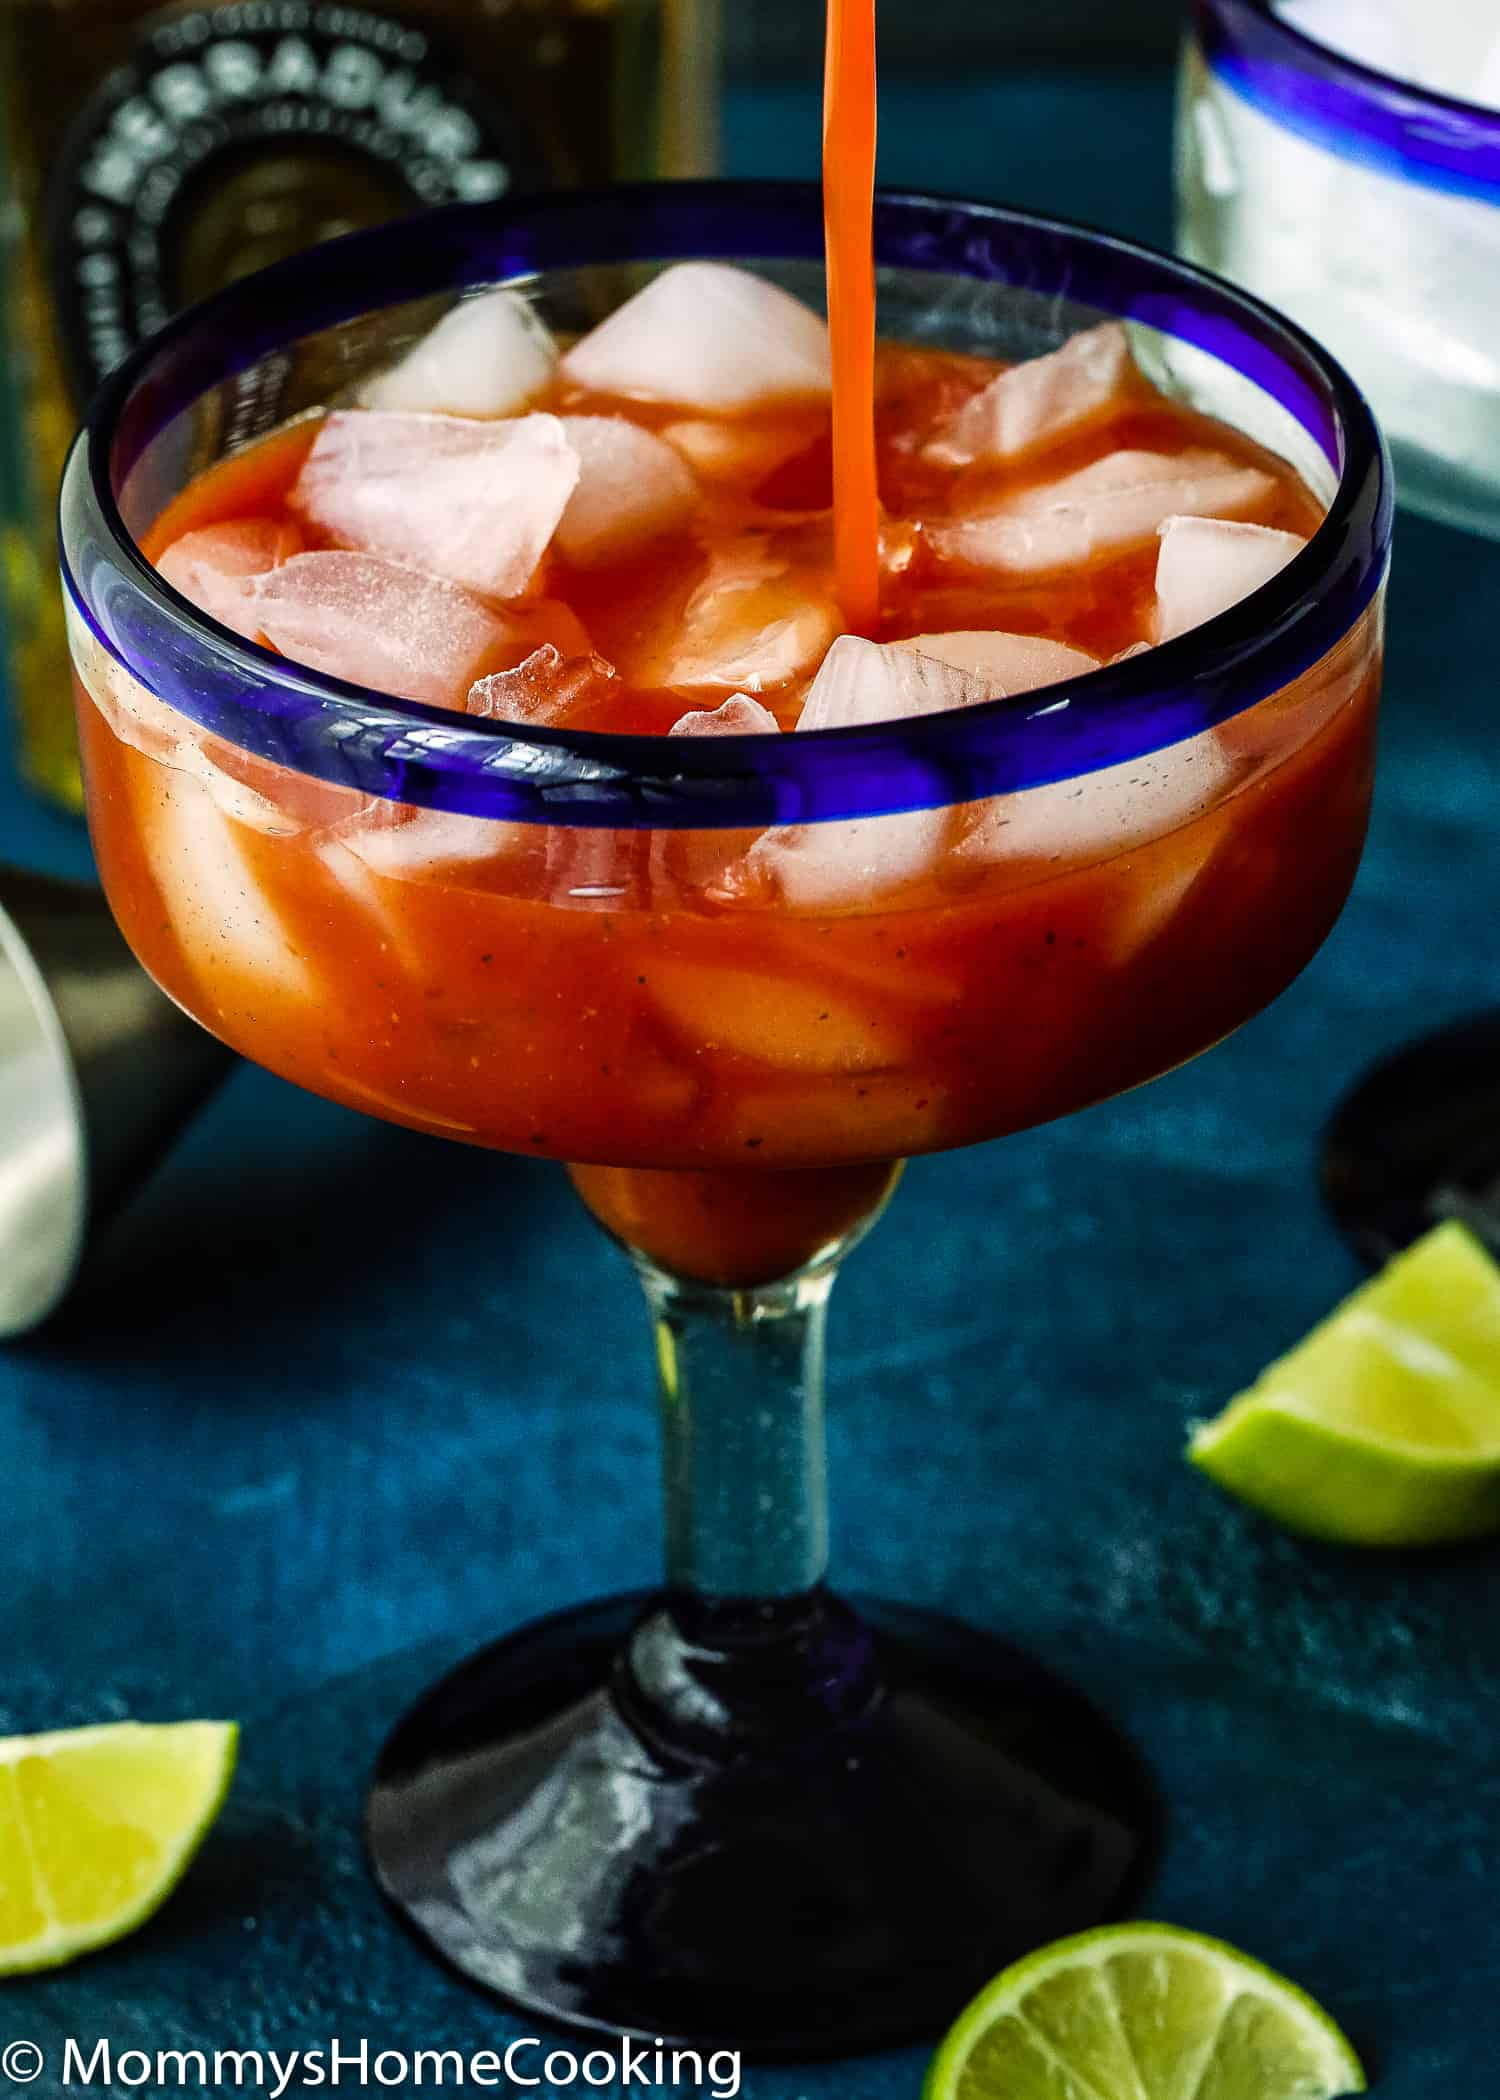 This Spicy Salsa Margarita is boozy, refreshing, citrusy and totally irresistible! This cocktail taste like the perfect combination of a bloody mary and a margarita, all in one sip. Made with fresh salsa, tequila, agave and lime, this delicious and different cocktail will knock your guests' socks off! https://mommyshomecooking.com